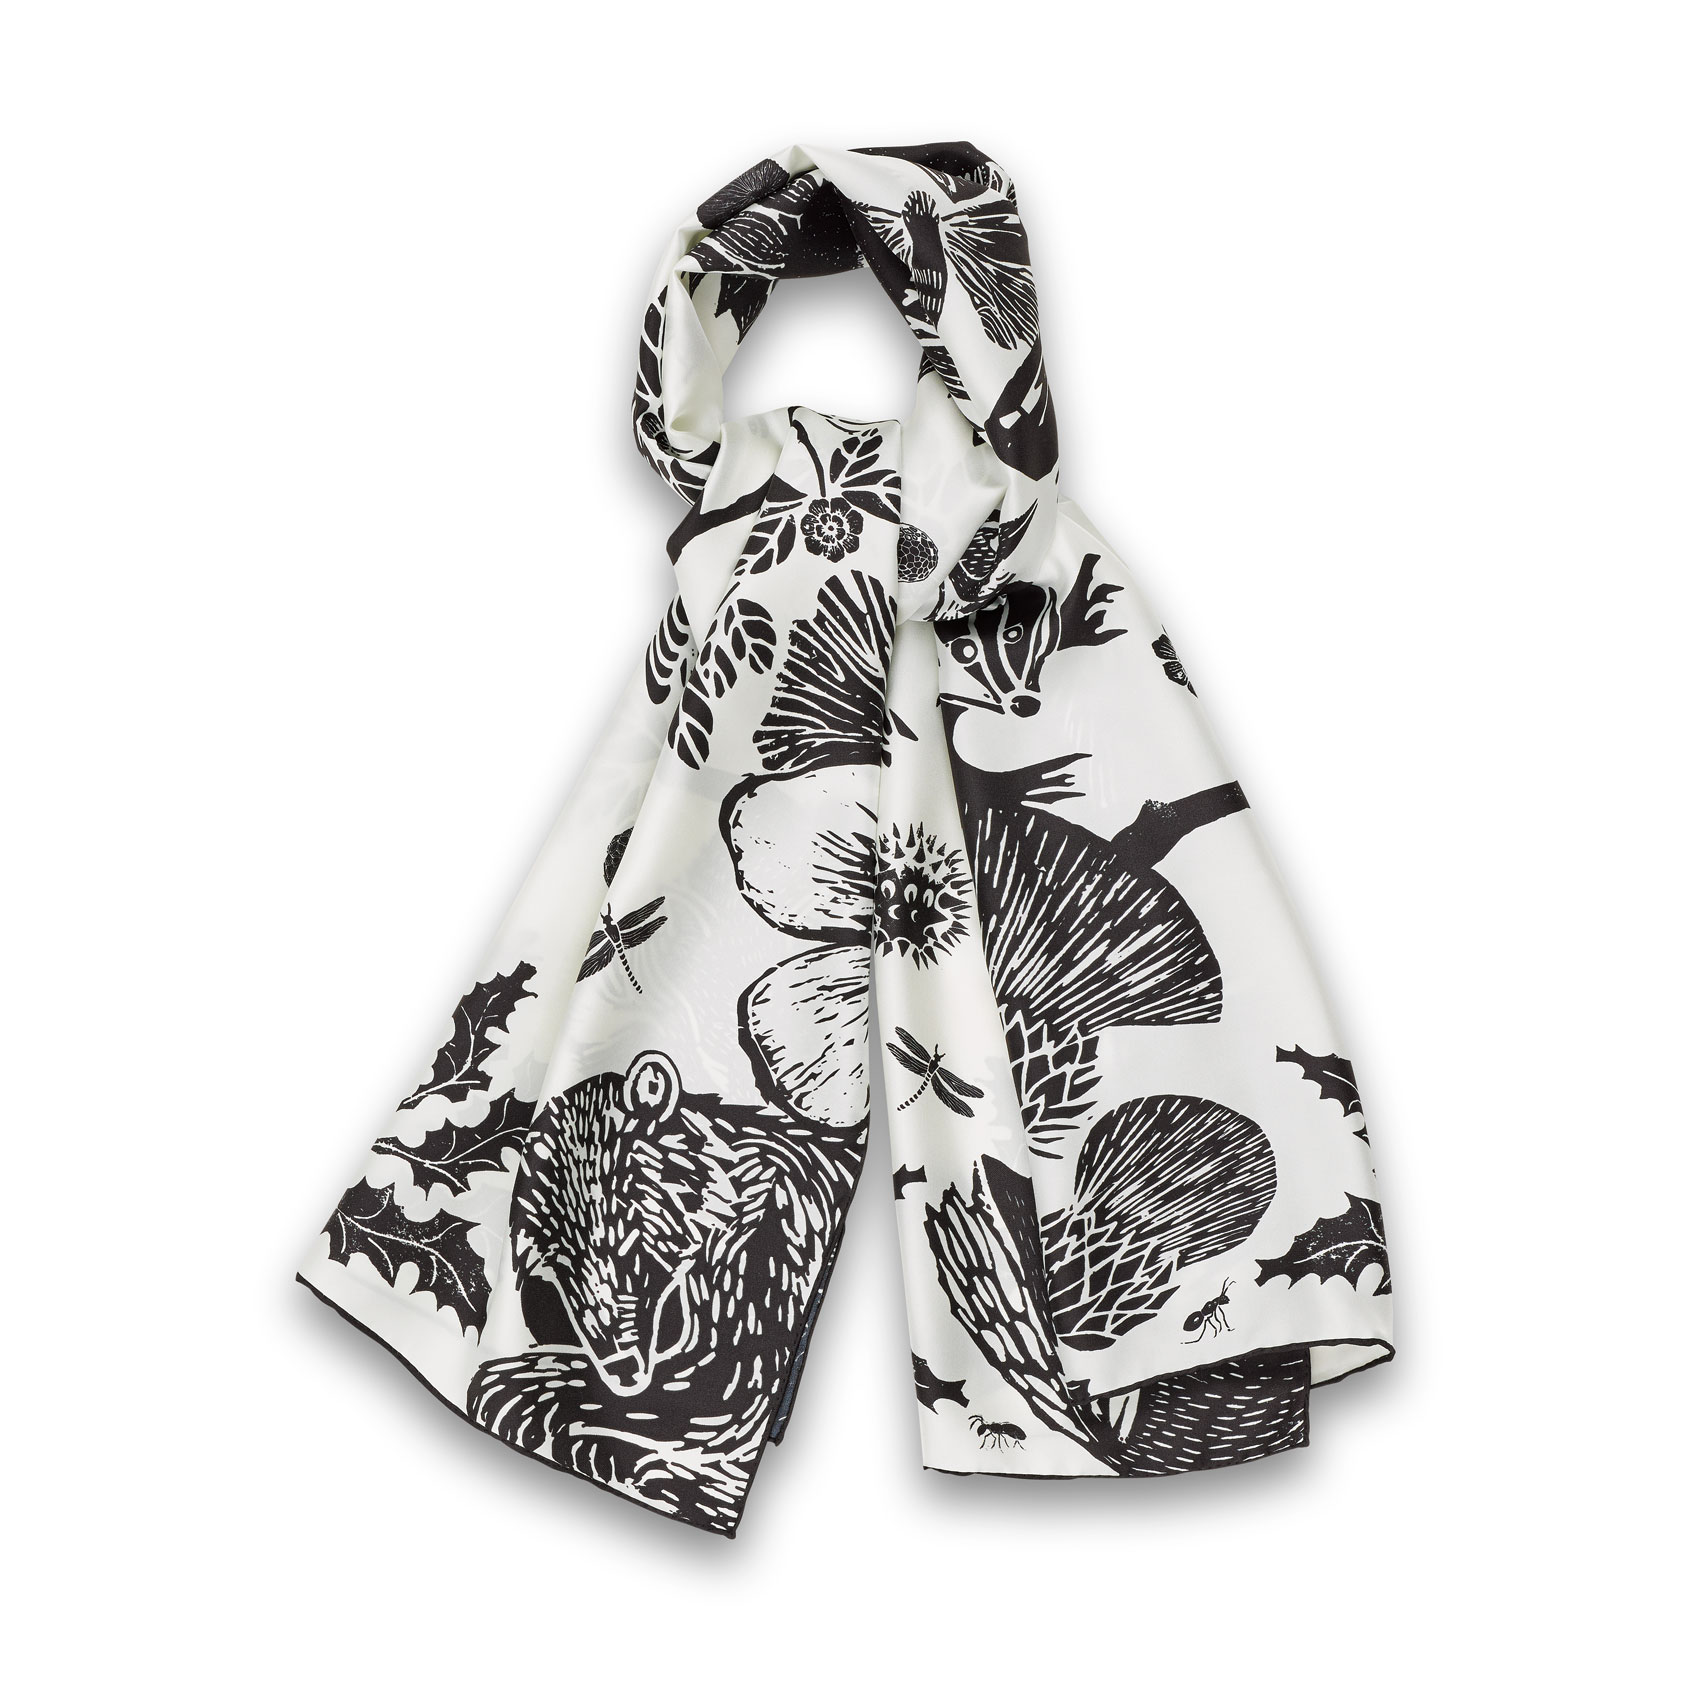 To Bee Scarf Nero Bianco Silk, Twill